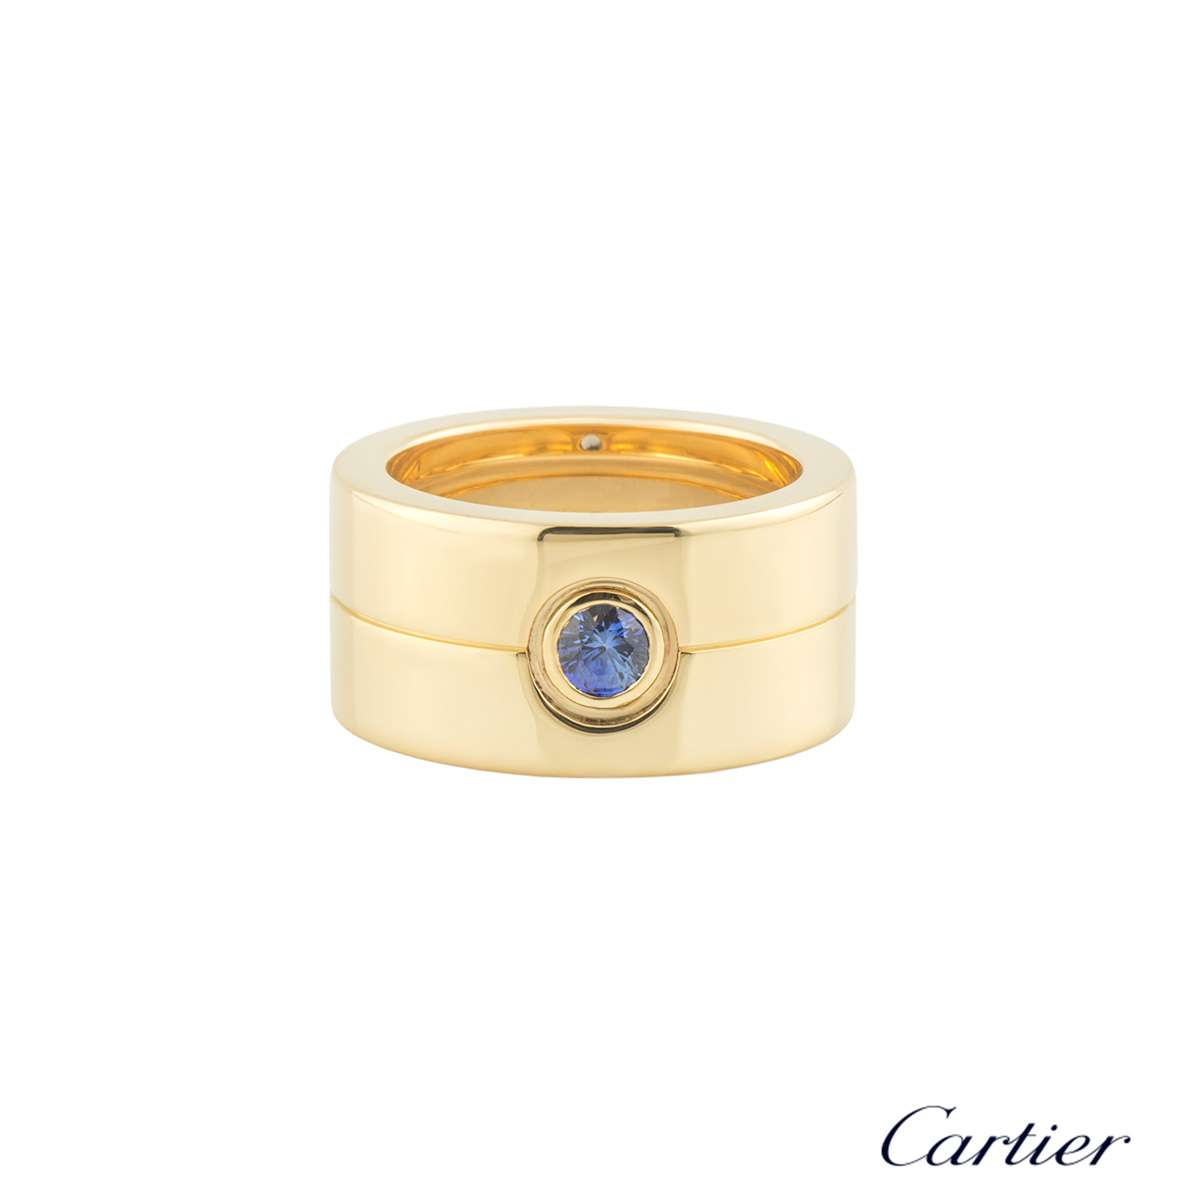 Cartier Yellow Gold Sapphire Band Ring